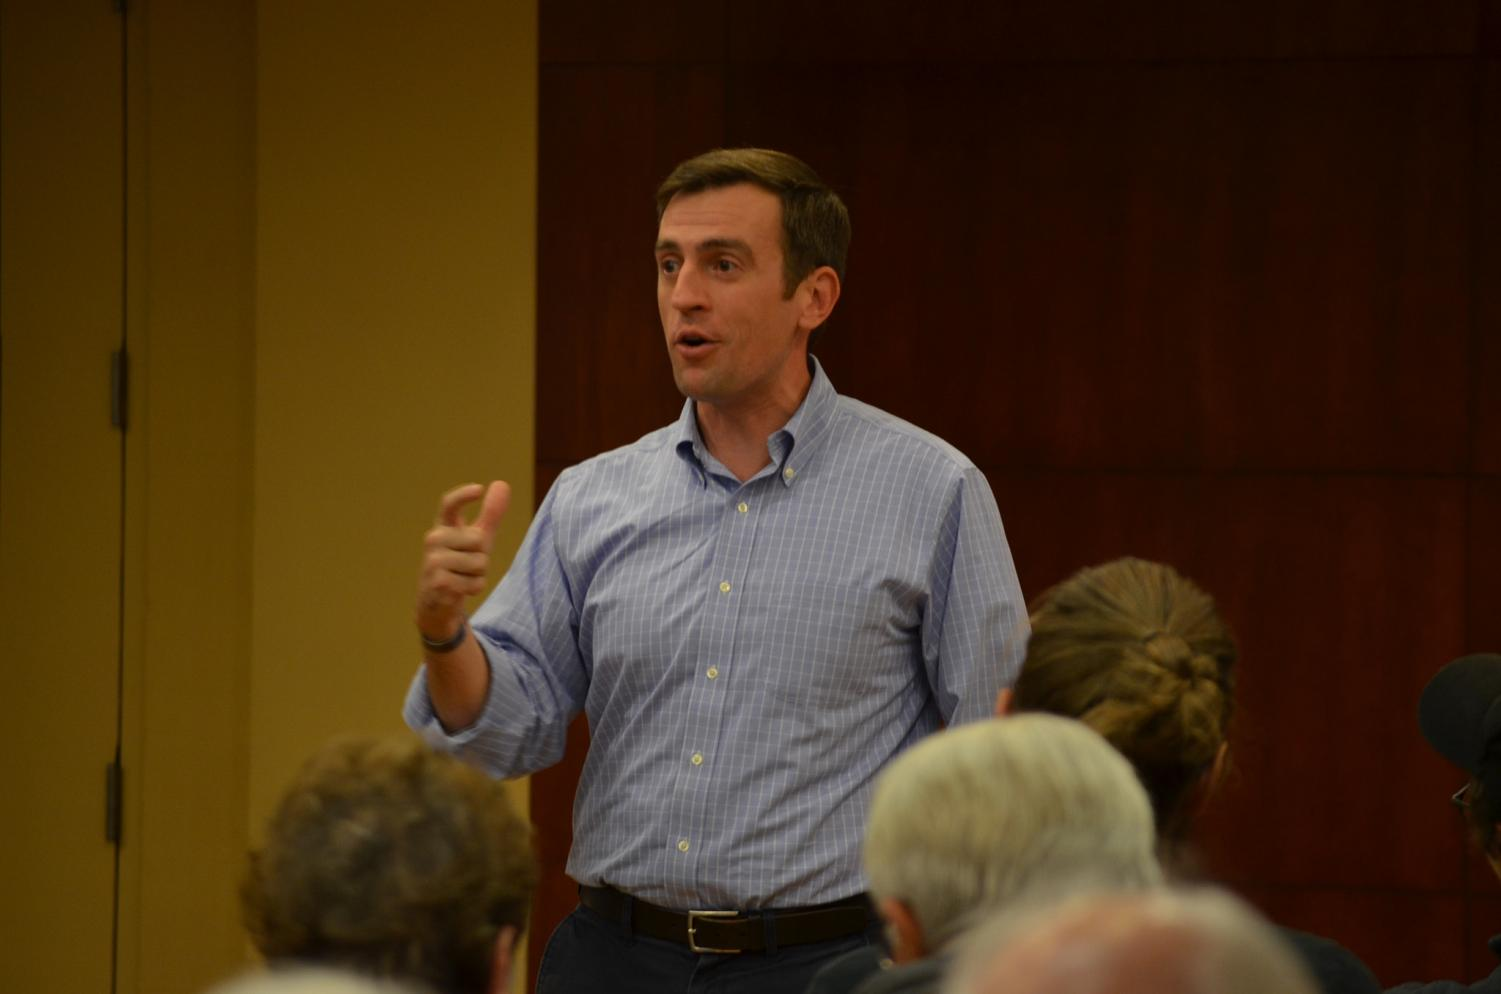 Congressional candidate Dan Feehan spoke at the Get Out the Vote Rally on Monday, Oct. 22 in the Student Activity Center. One major topic was to get out and vote. Feehan knew that the audience was voting so he challenged them to get others to join.